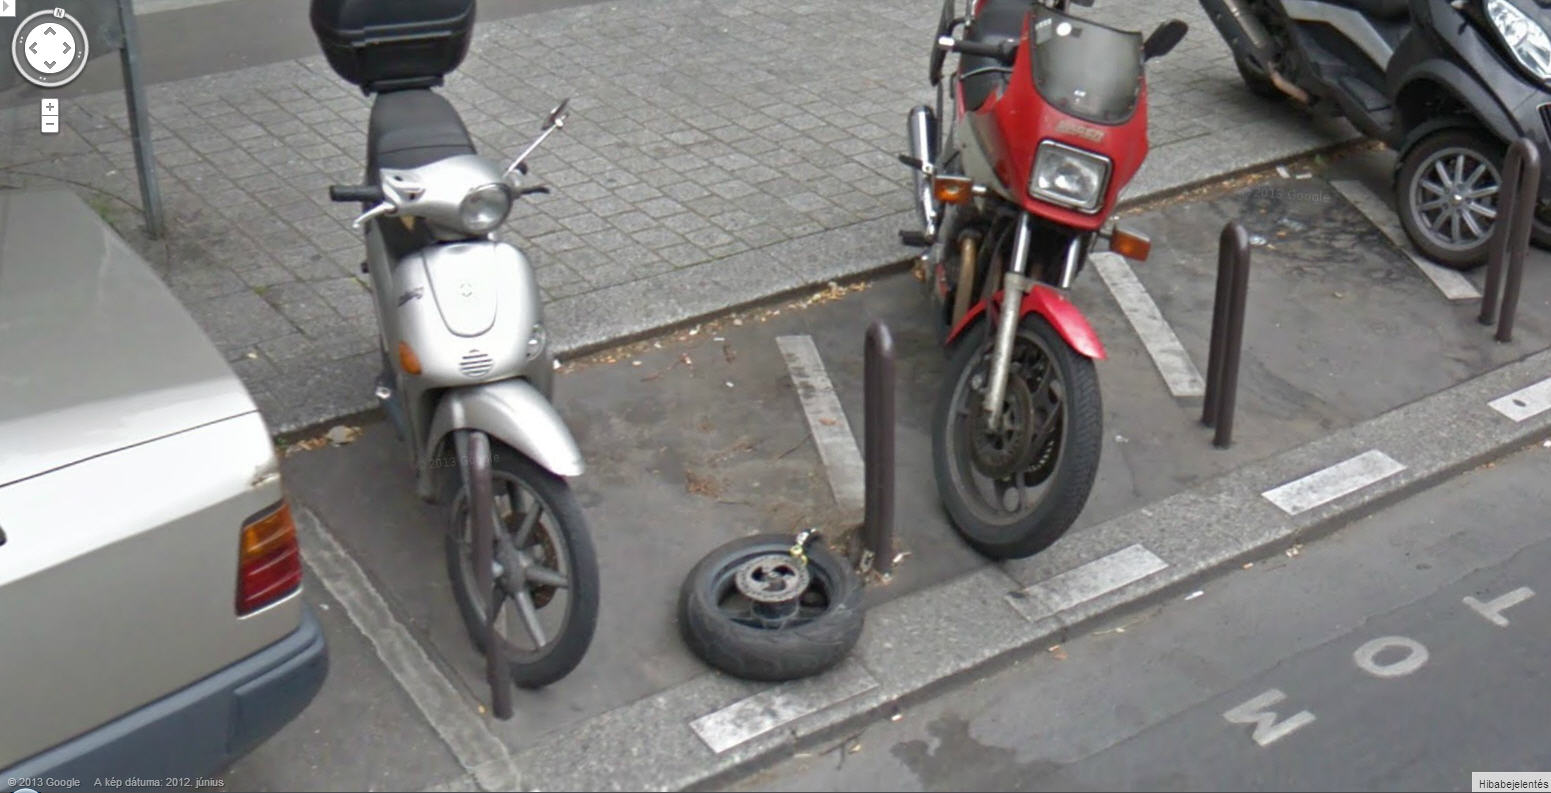 Not much left of this guys scooter